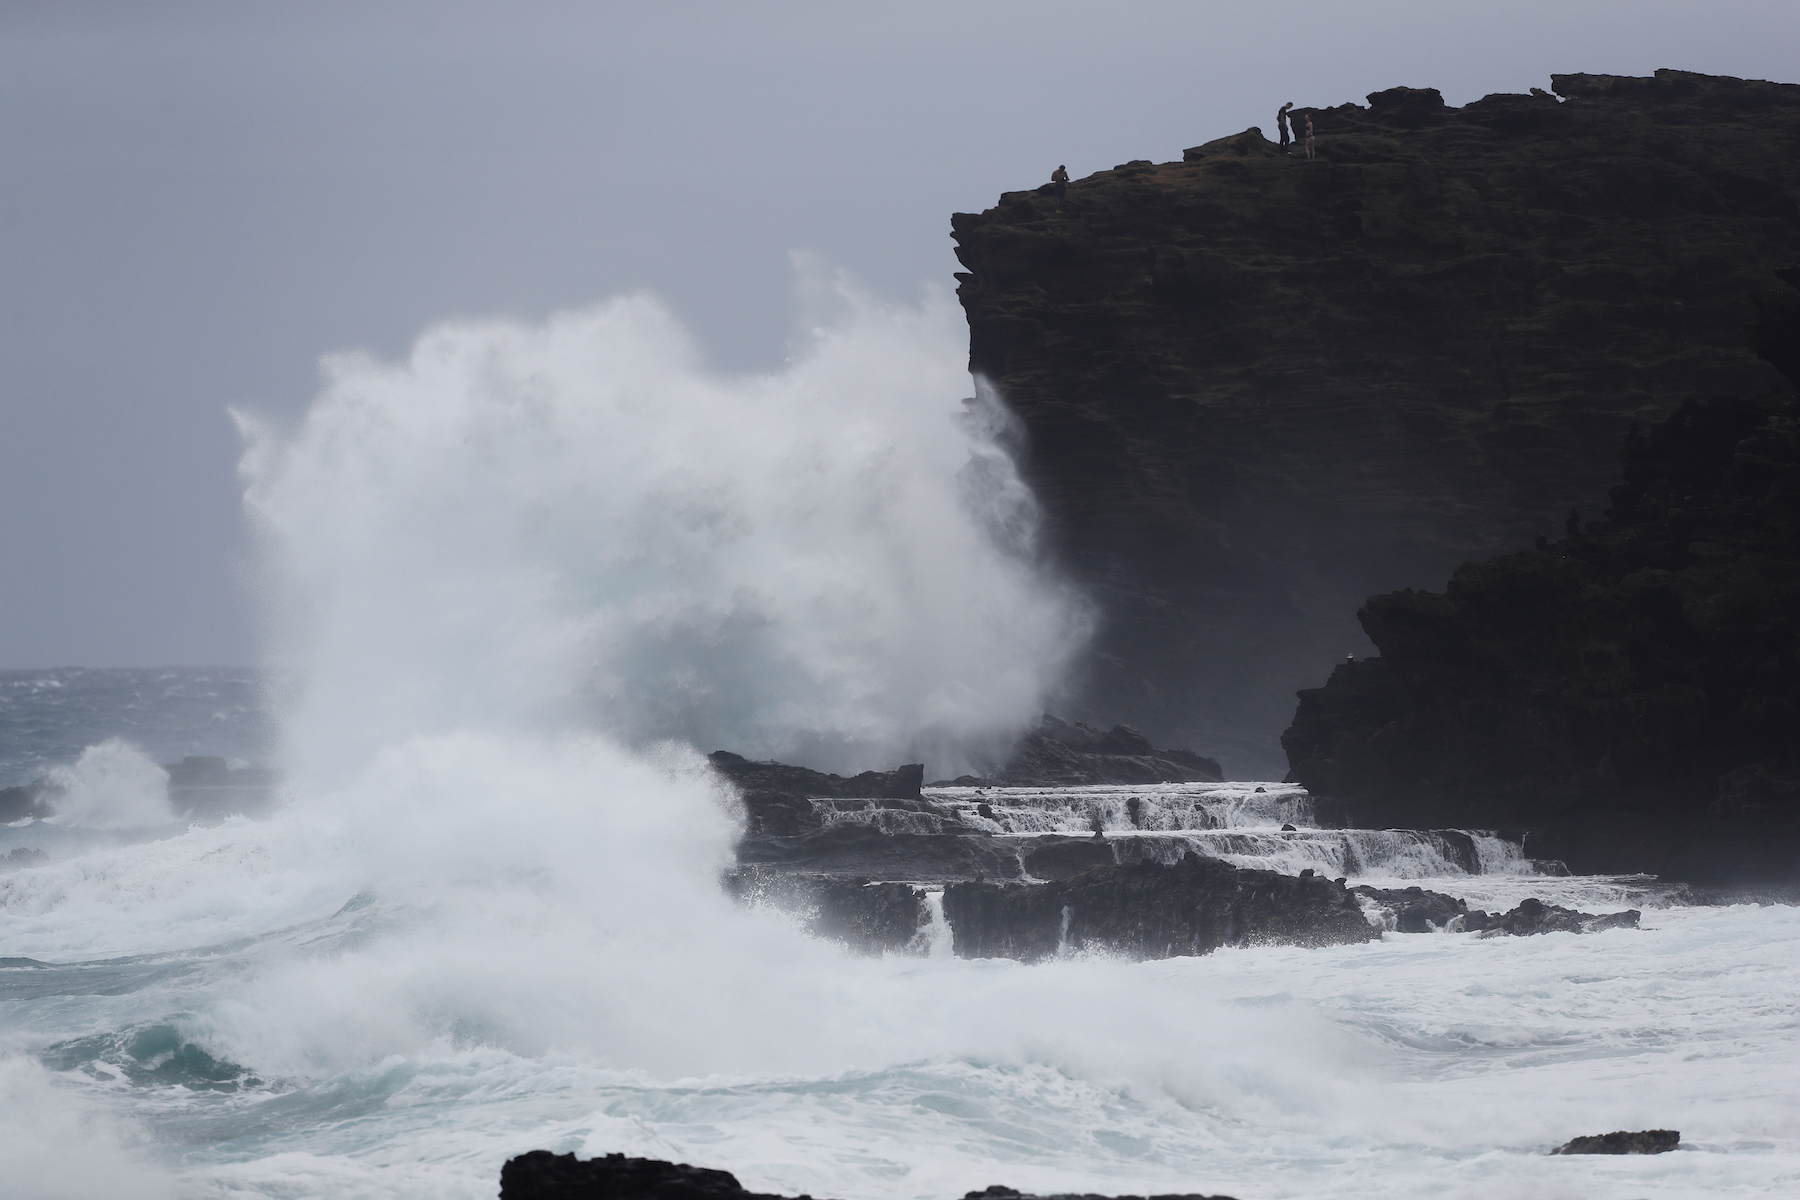 <div class='meta'><div class='origin-logo' data-origin='AP'></div><span class='caption-text' data-credit='AP Photo/Marco Garcia'>Huge waves slam the cliffs near the Halona Blowhole, Aug. 24, 2018, in Waimanalo, Hawaii. As Hurricane Lane approaches Oahu, large oceans swells have impacted the coastline.</span></div>